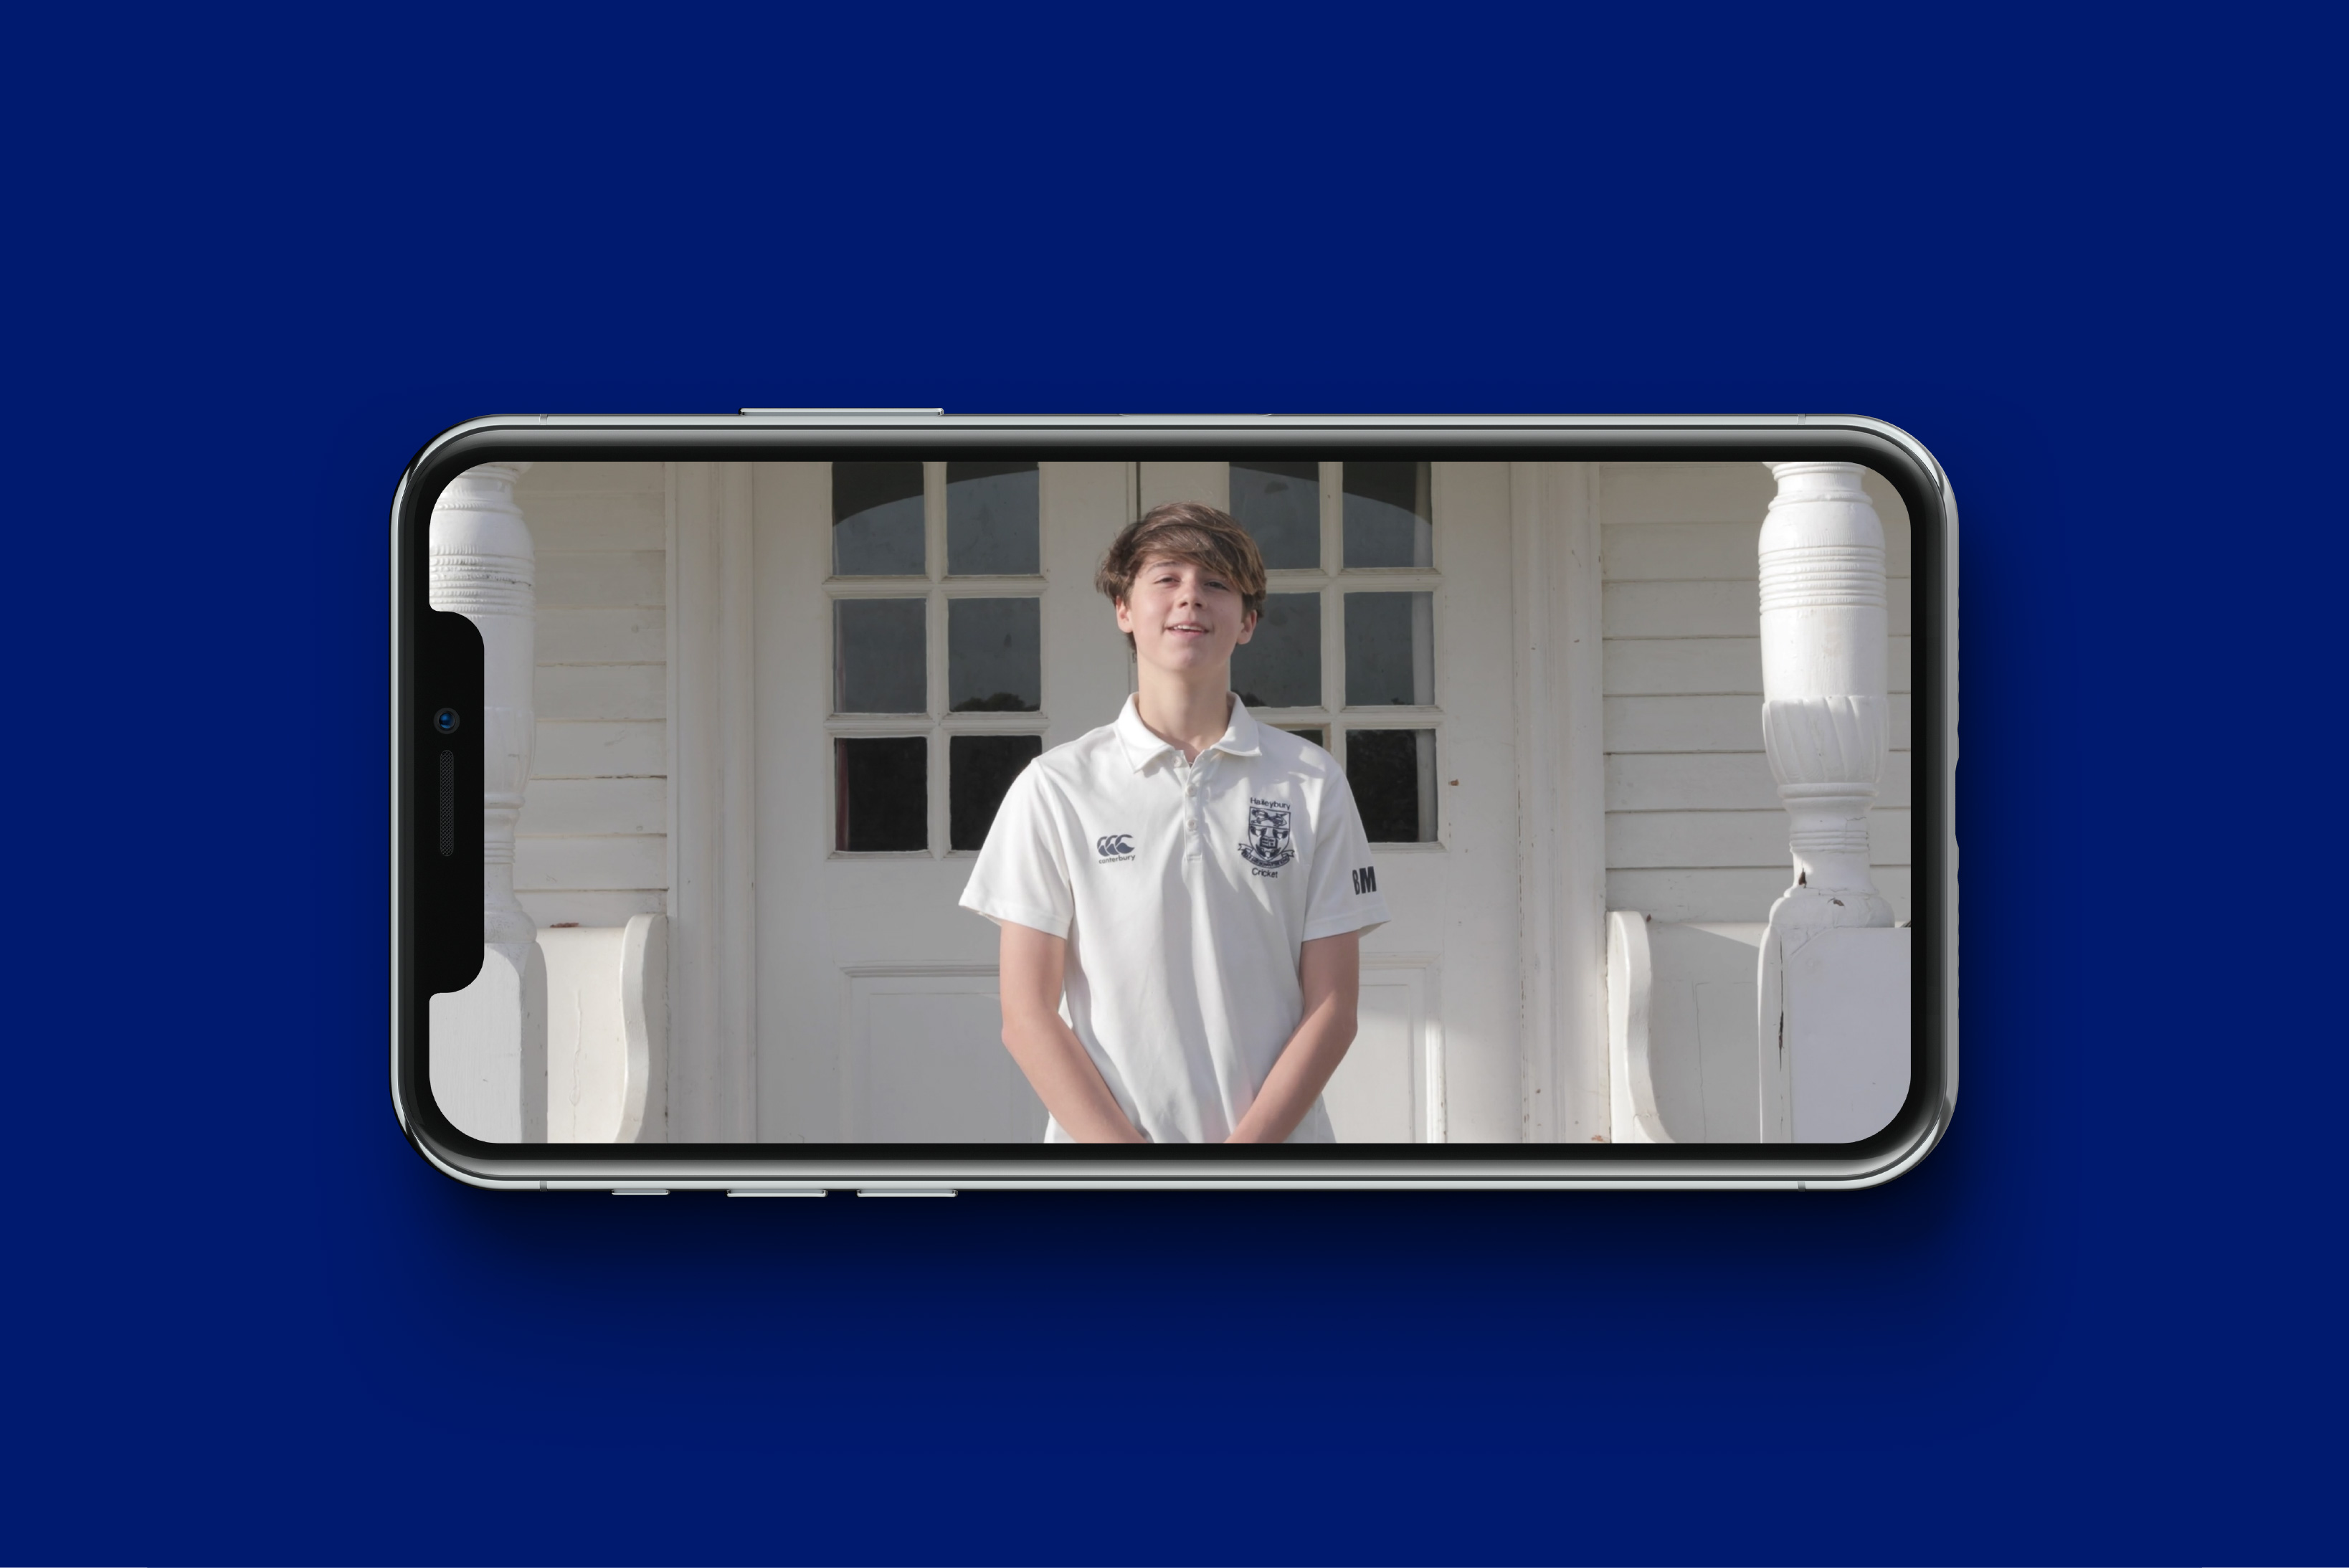 School pupil interview shown on a mobile phone